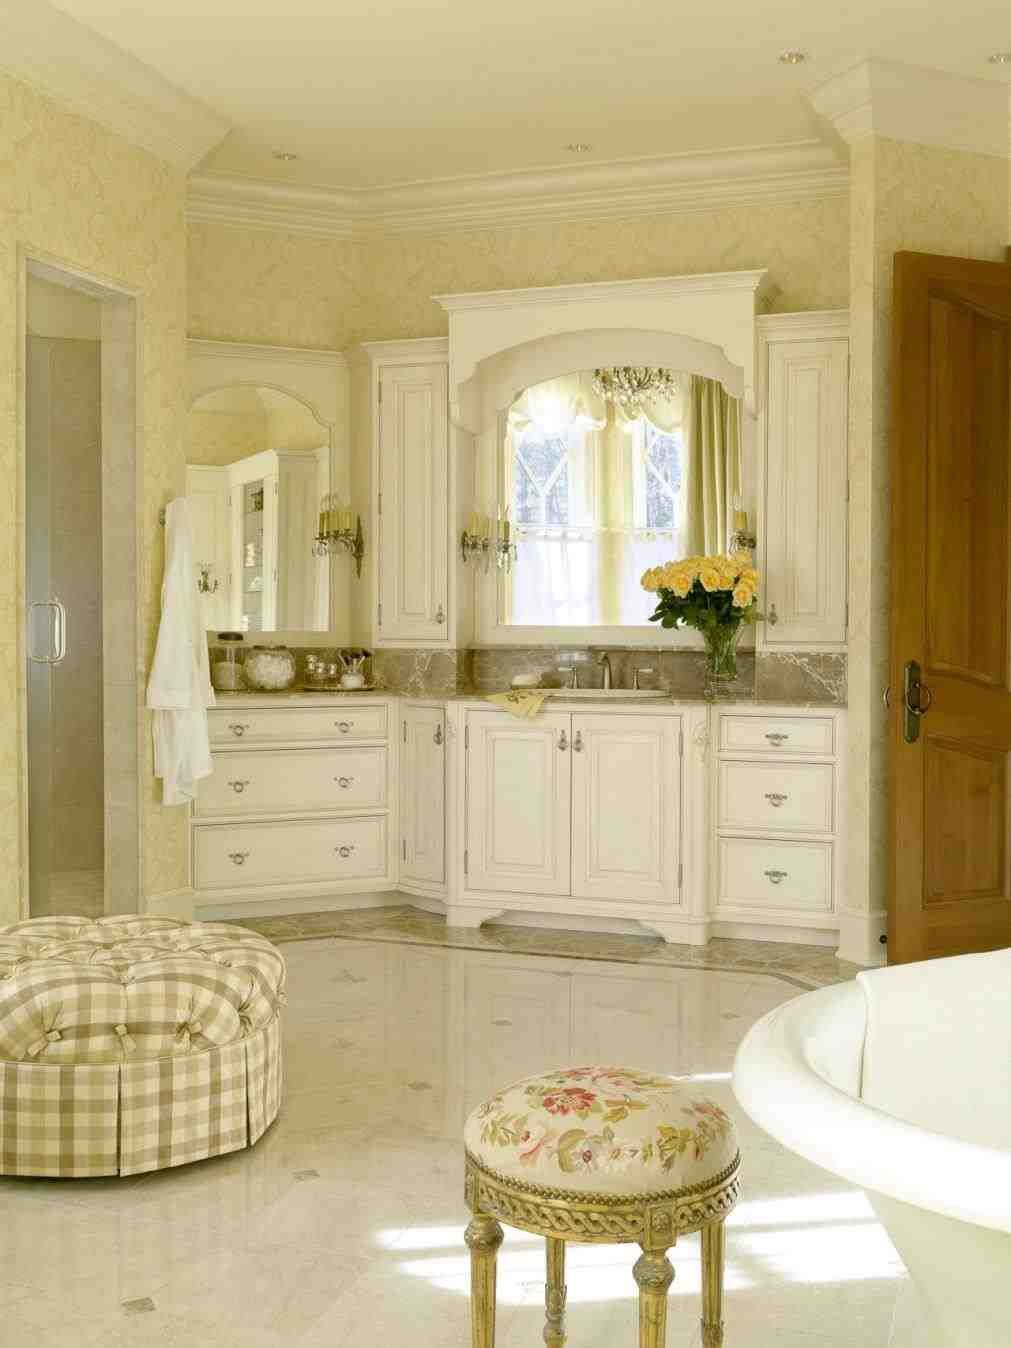 This country bathroom ideas on a budget - bedroom very small ...